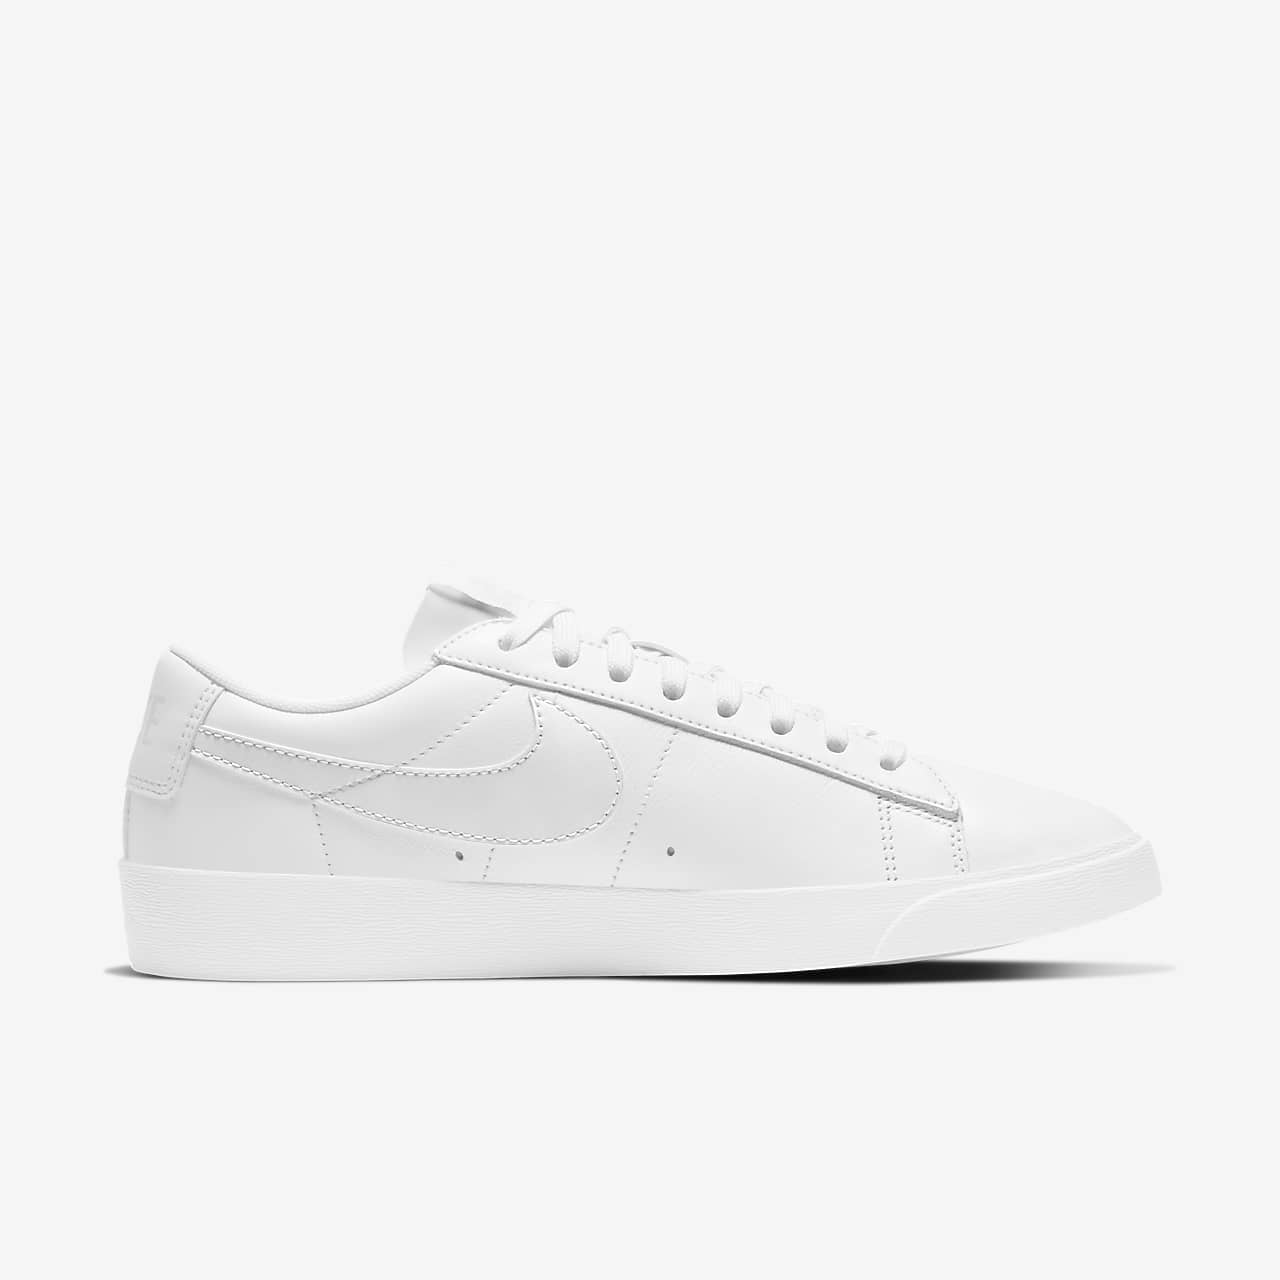 uk availability 7eb73 88952 Nike Blazer Low LE Women's Shoe